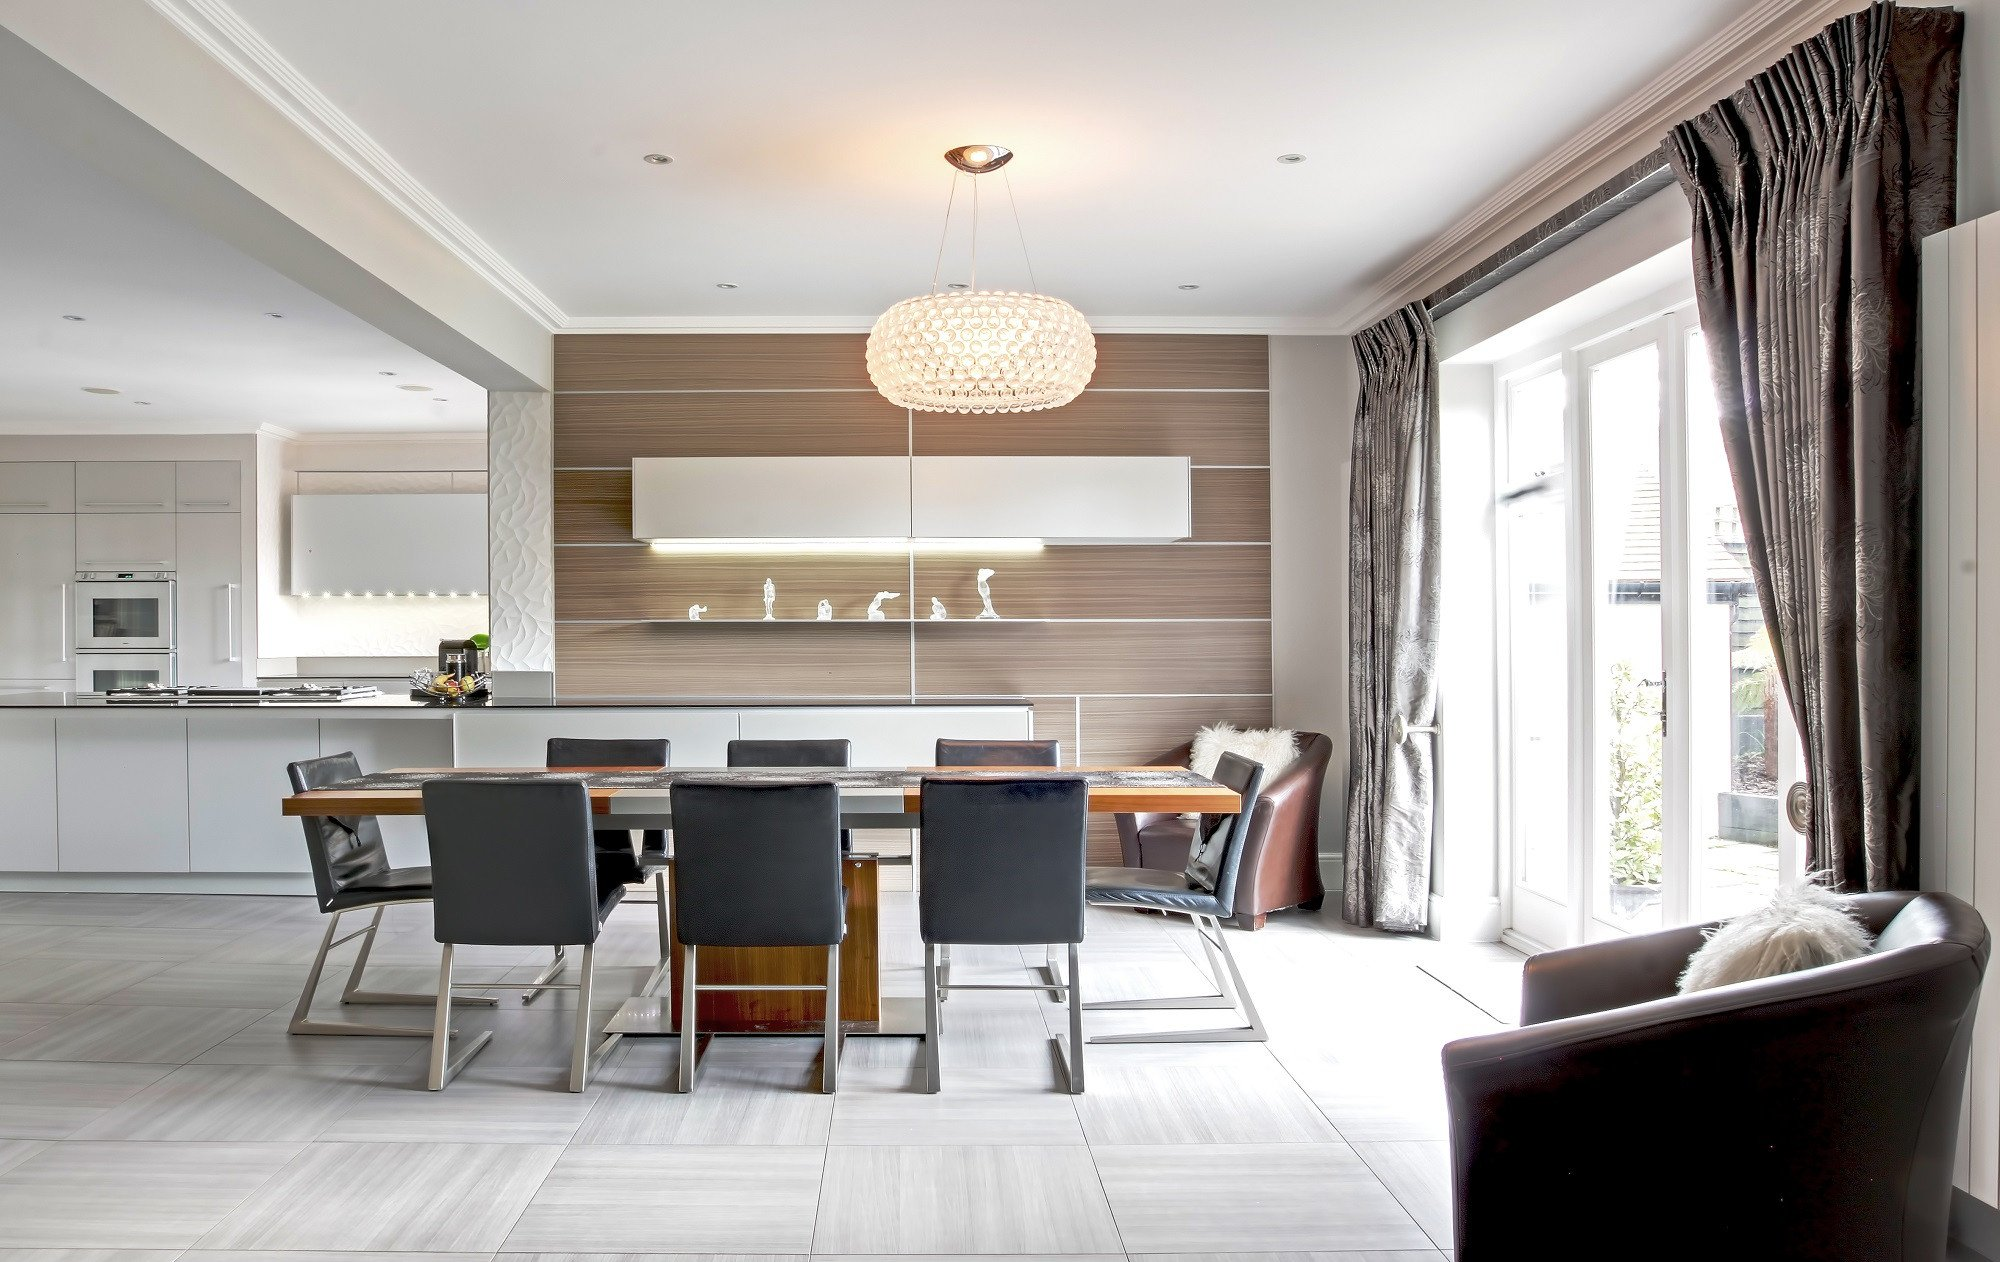 Modern Living Dining Room Decorating Ideas 32 Stylish Dining Room Ideas to Impress Your Dinner Guests